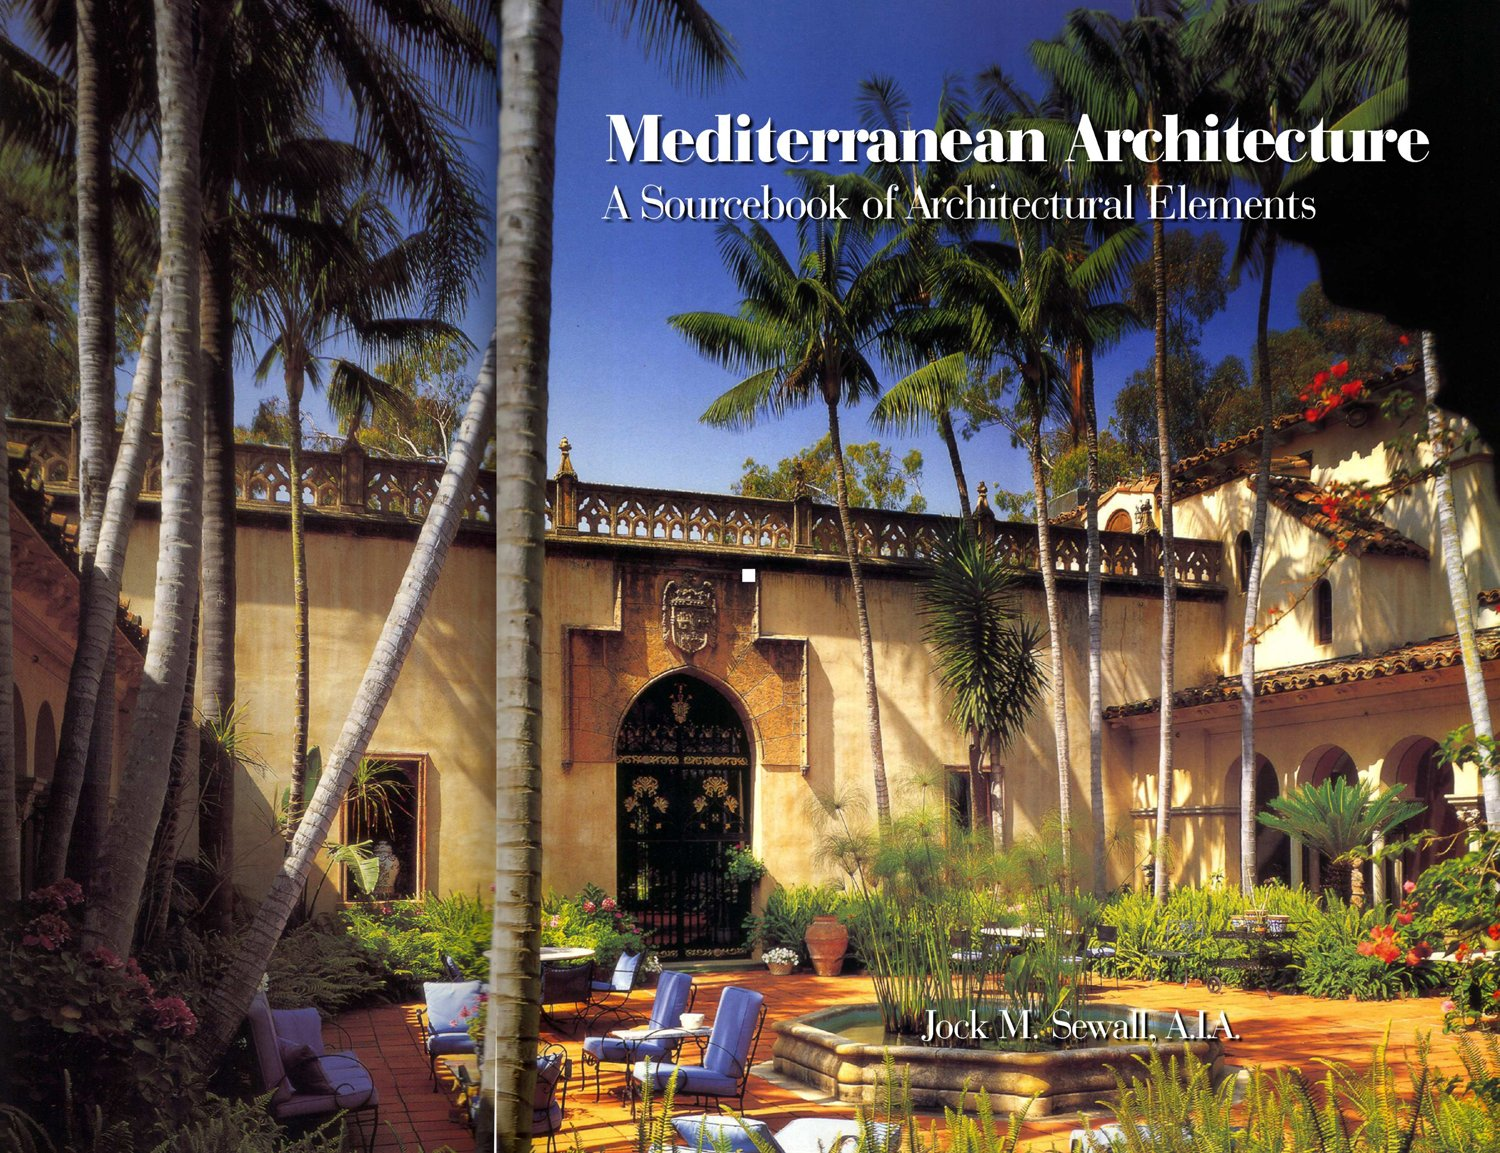 Mediterranean Architecture: A Sourcebook of Architectural Elements